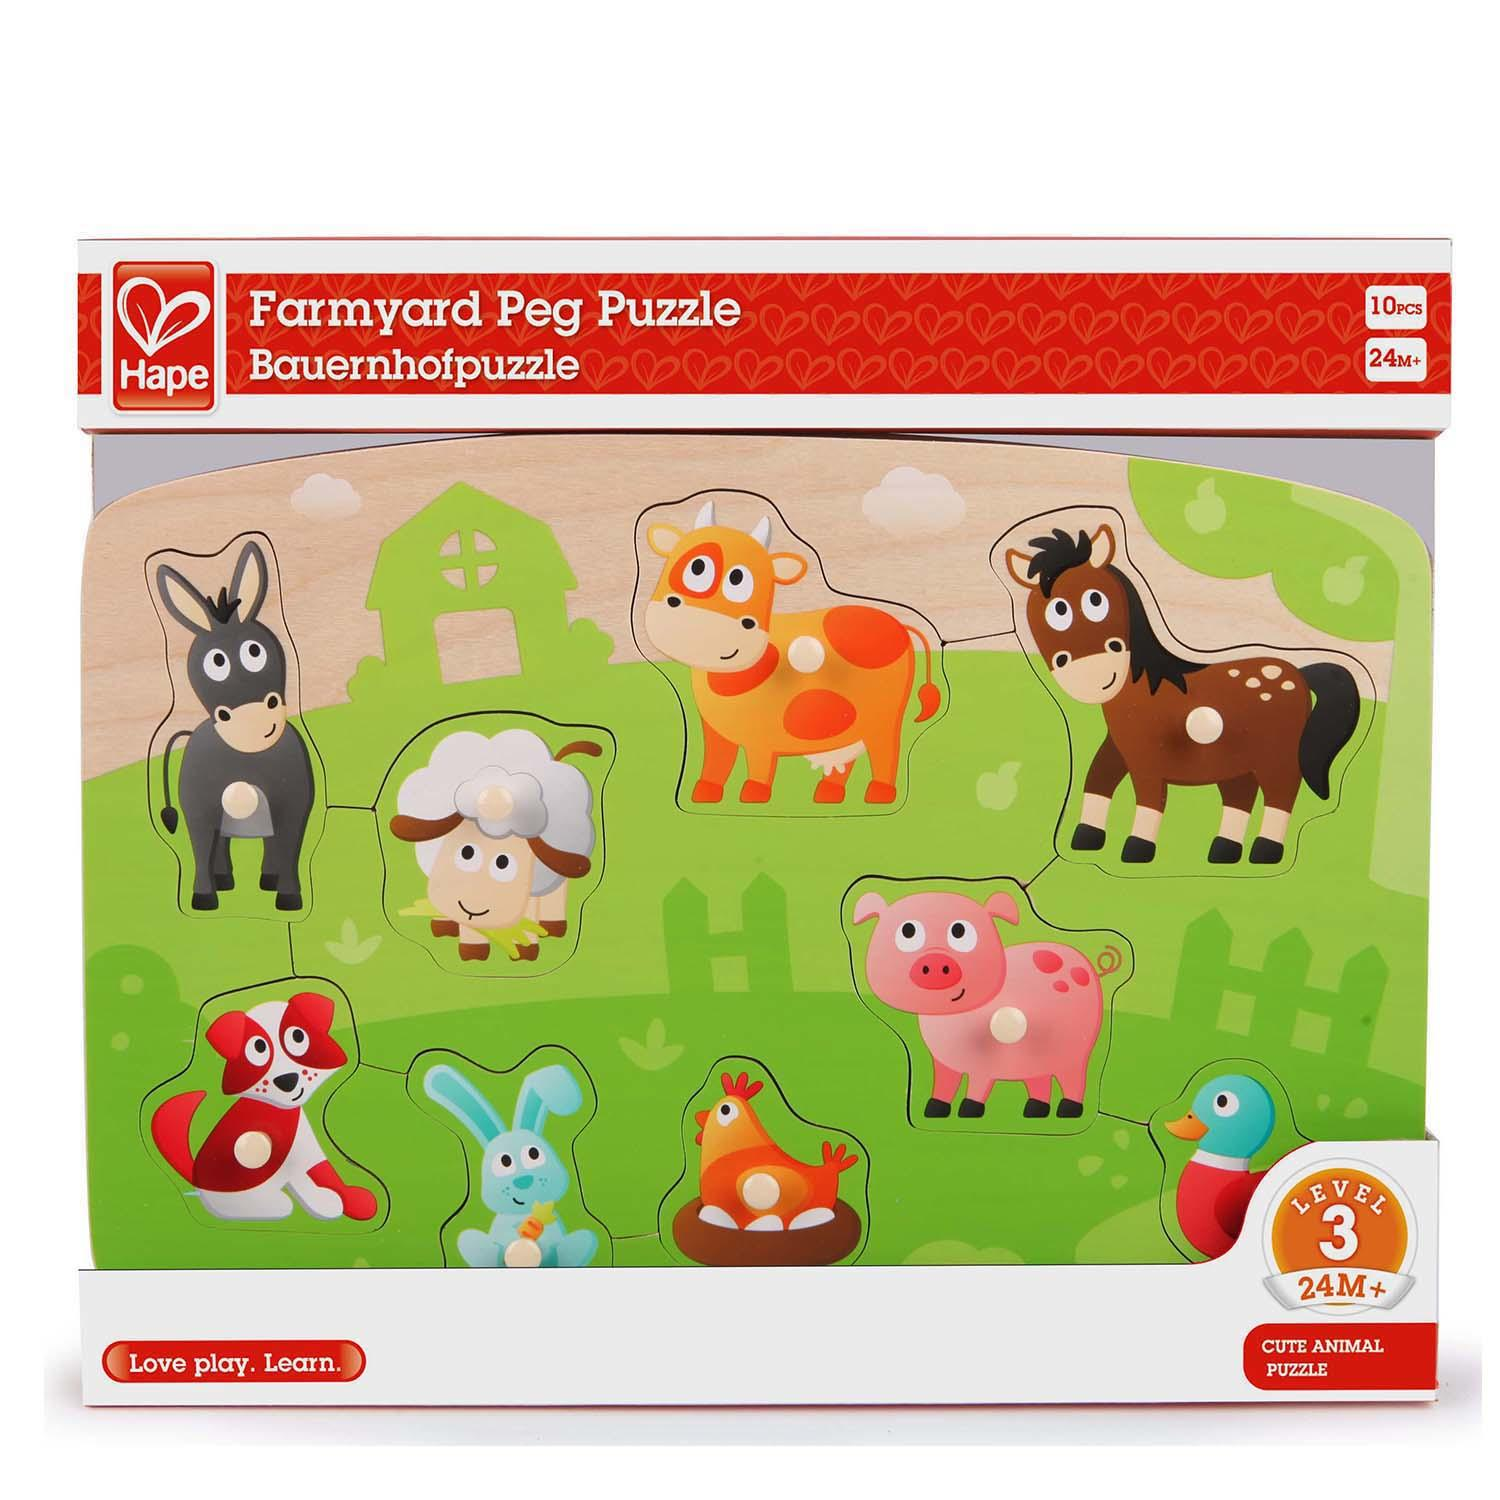 Packaging for farmyard puzzle.